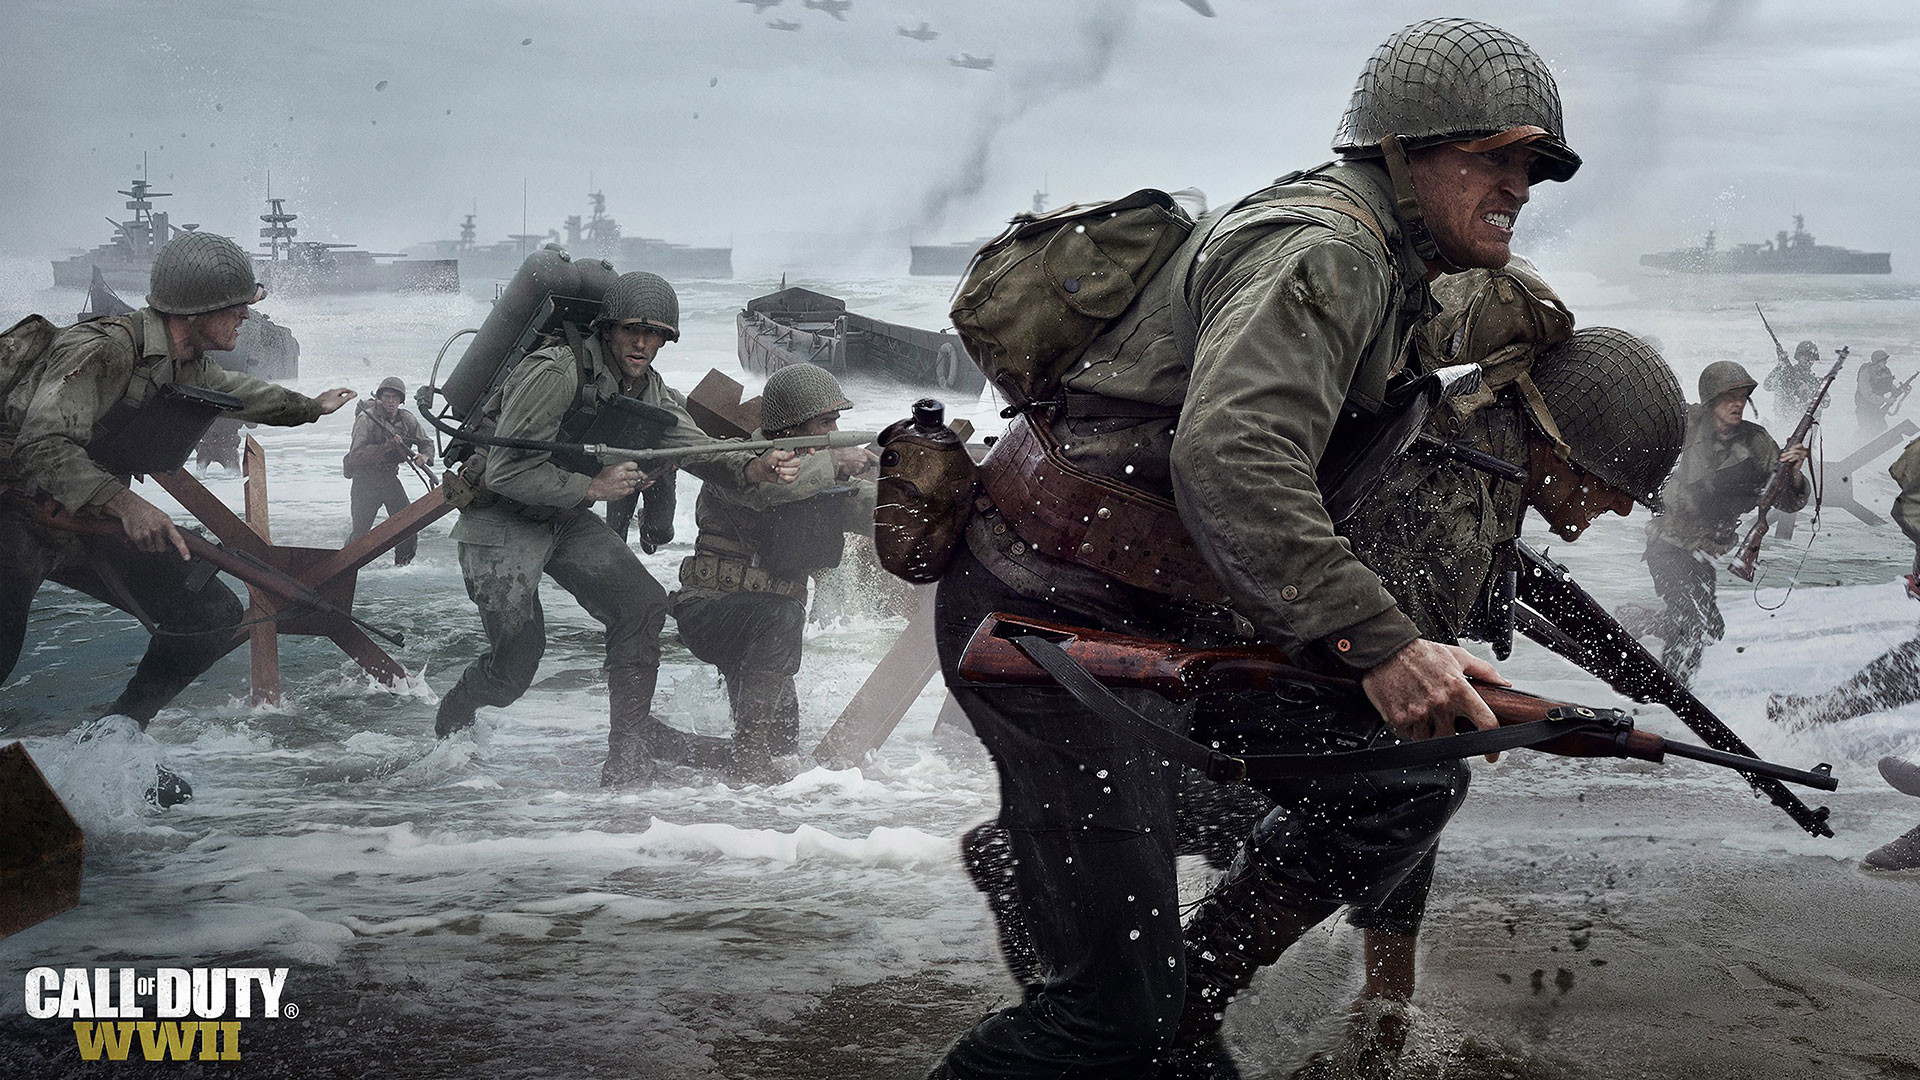 … CALL OF DUTY WWII 1080p Wallpaper …